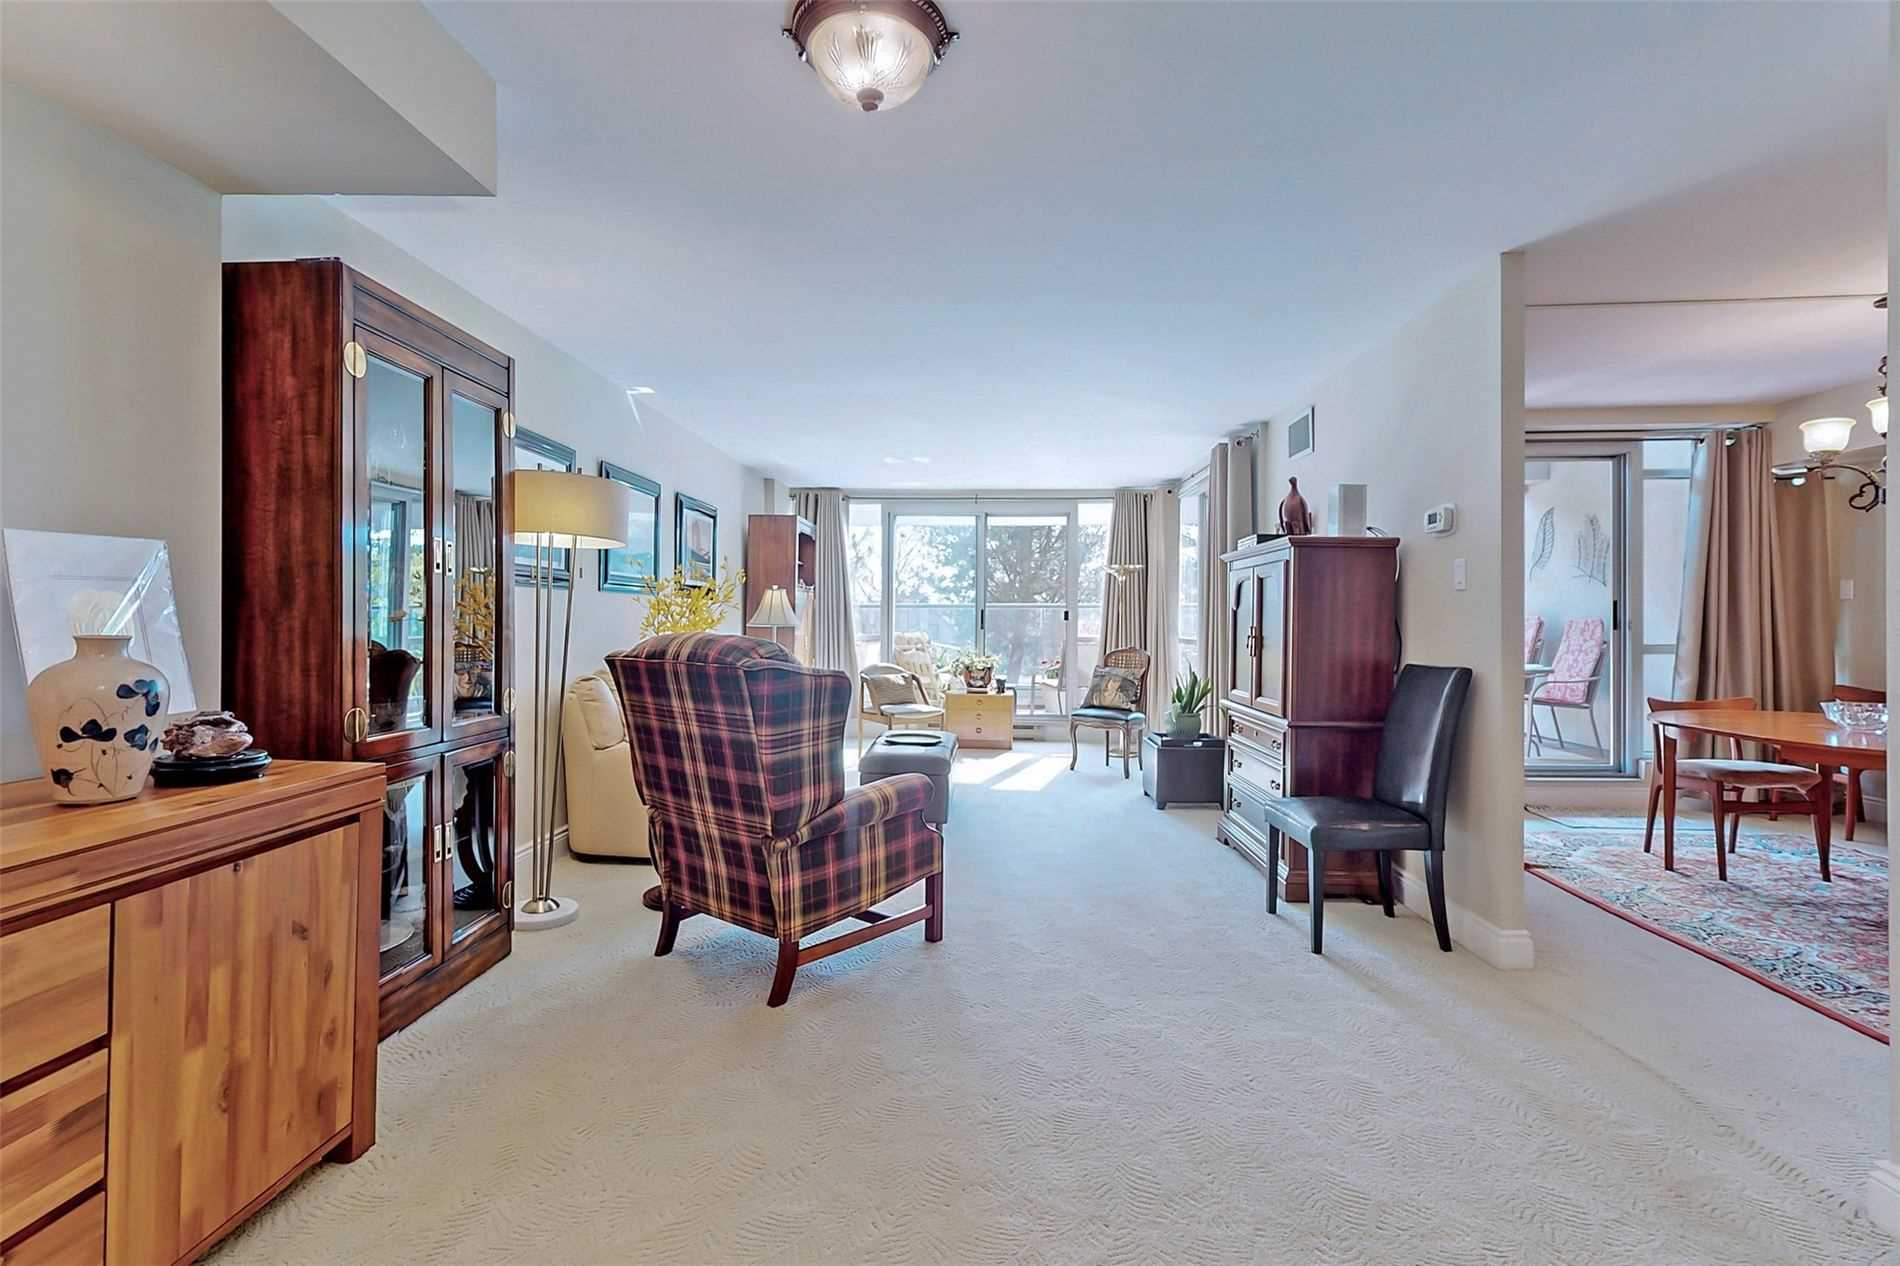 Image 39 of 40 showing inside of 2 Bedroom Condo Apt 2-Storey for Sale at 25 Cumberland Lane Unit# 105, Ajax L1S7K1